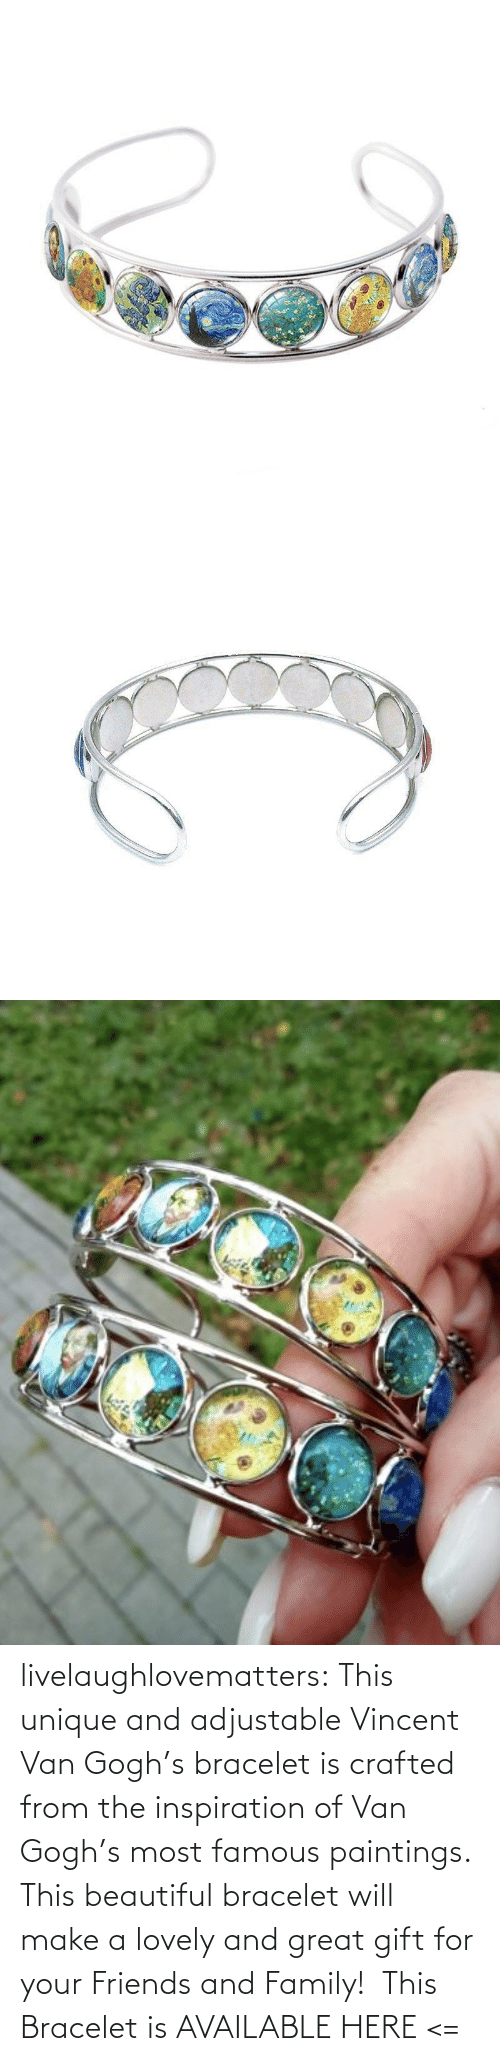 Vincent van Gogh: livelaughlovematters: This unique and adjustable Vincent Van Gogh's bracelet is crafted from the inspiration of Van Gogh's most famous paintings. This beautiful bracelet will make a lovely and great gift for your Friends and Family!  This Bracelet is AVAILABLE HERE <=